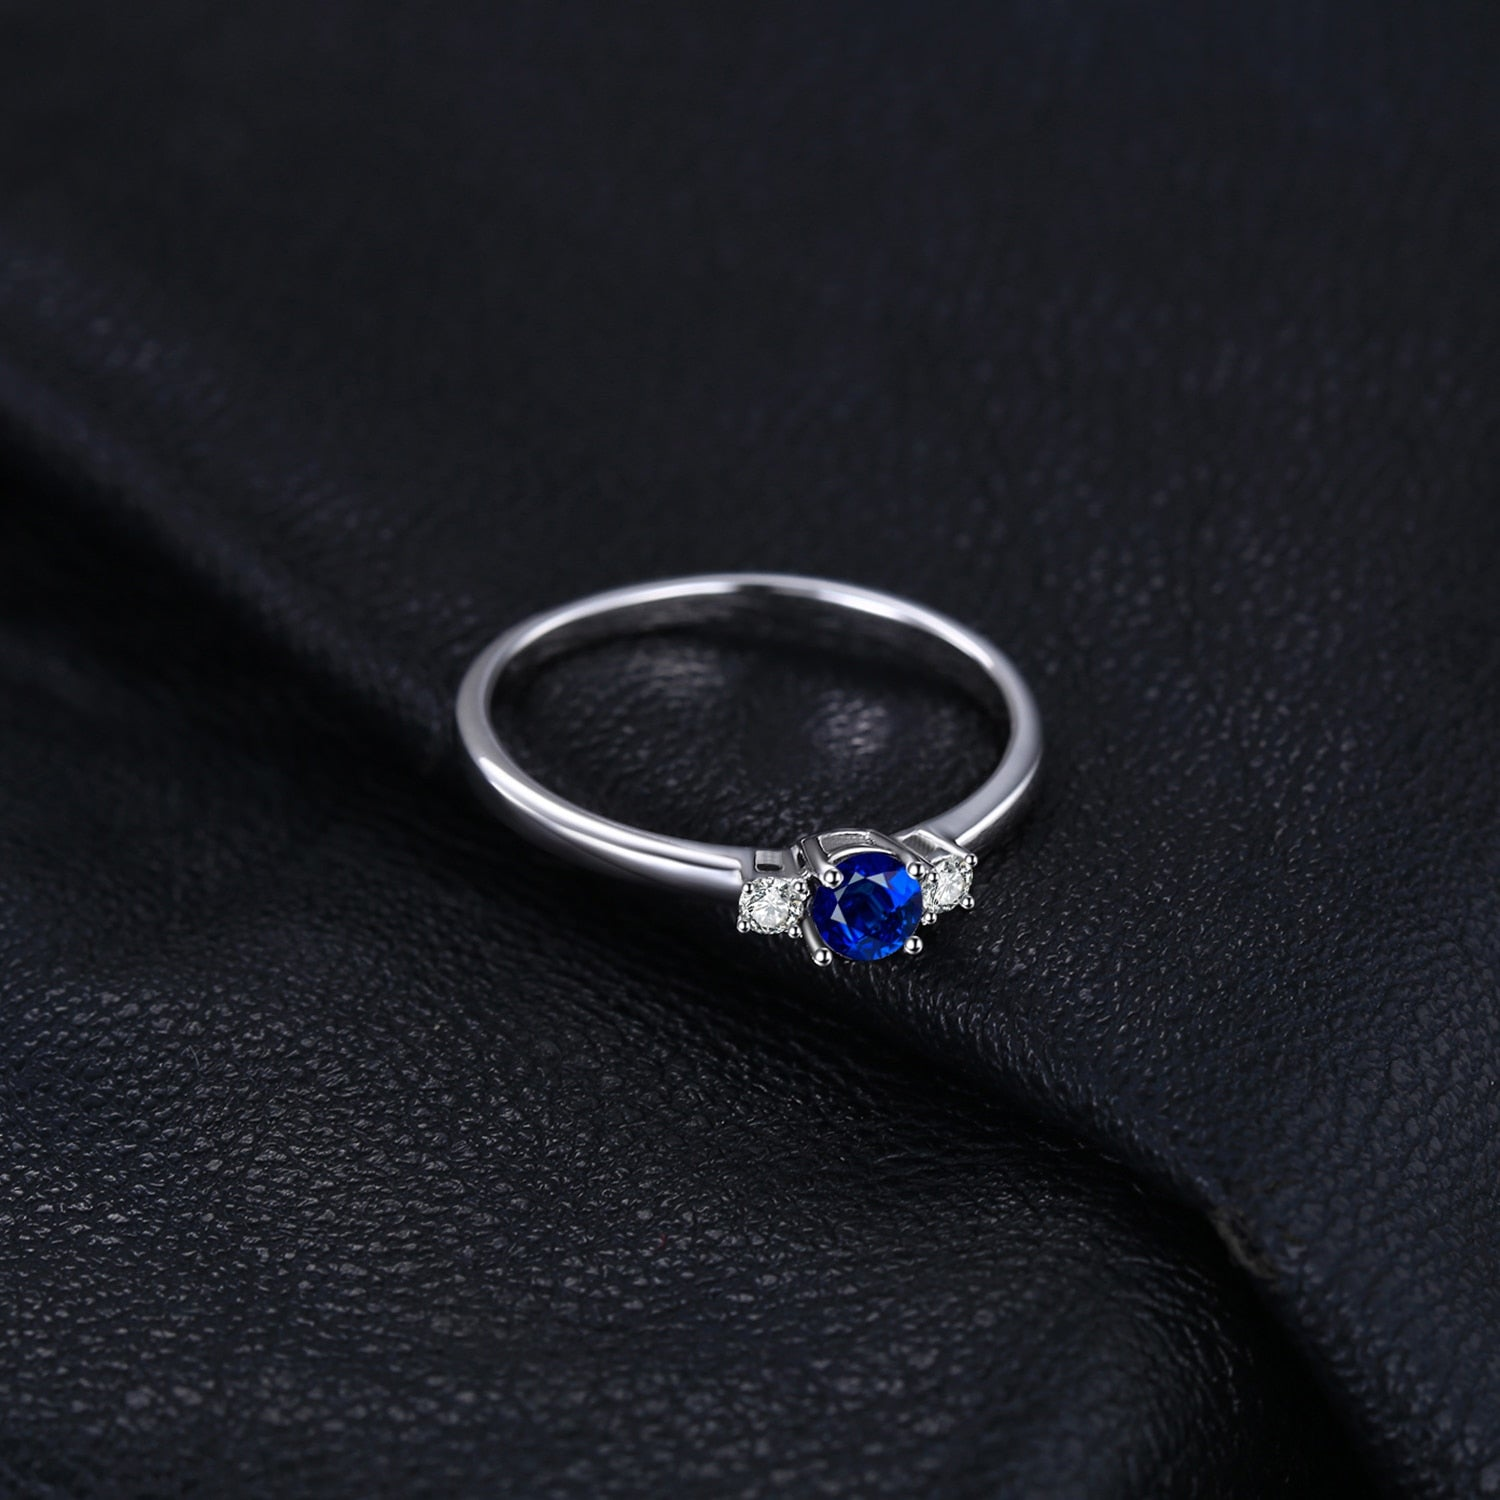 Classic Blue Sapphire Ring Promise Engagement Ring - RHEA LIGHT